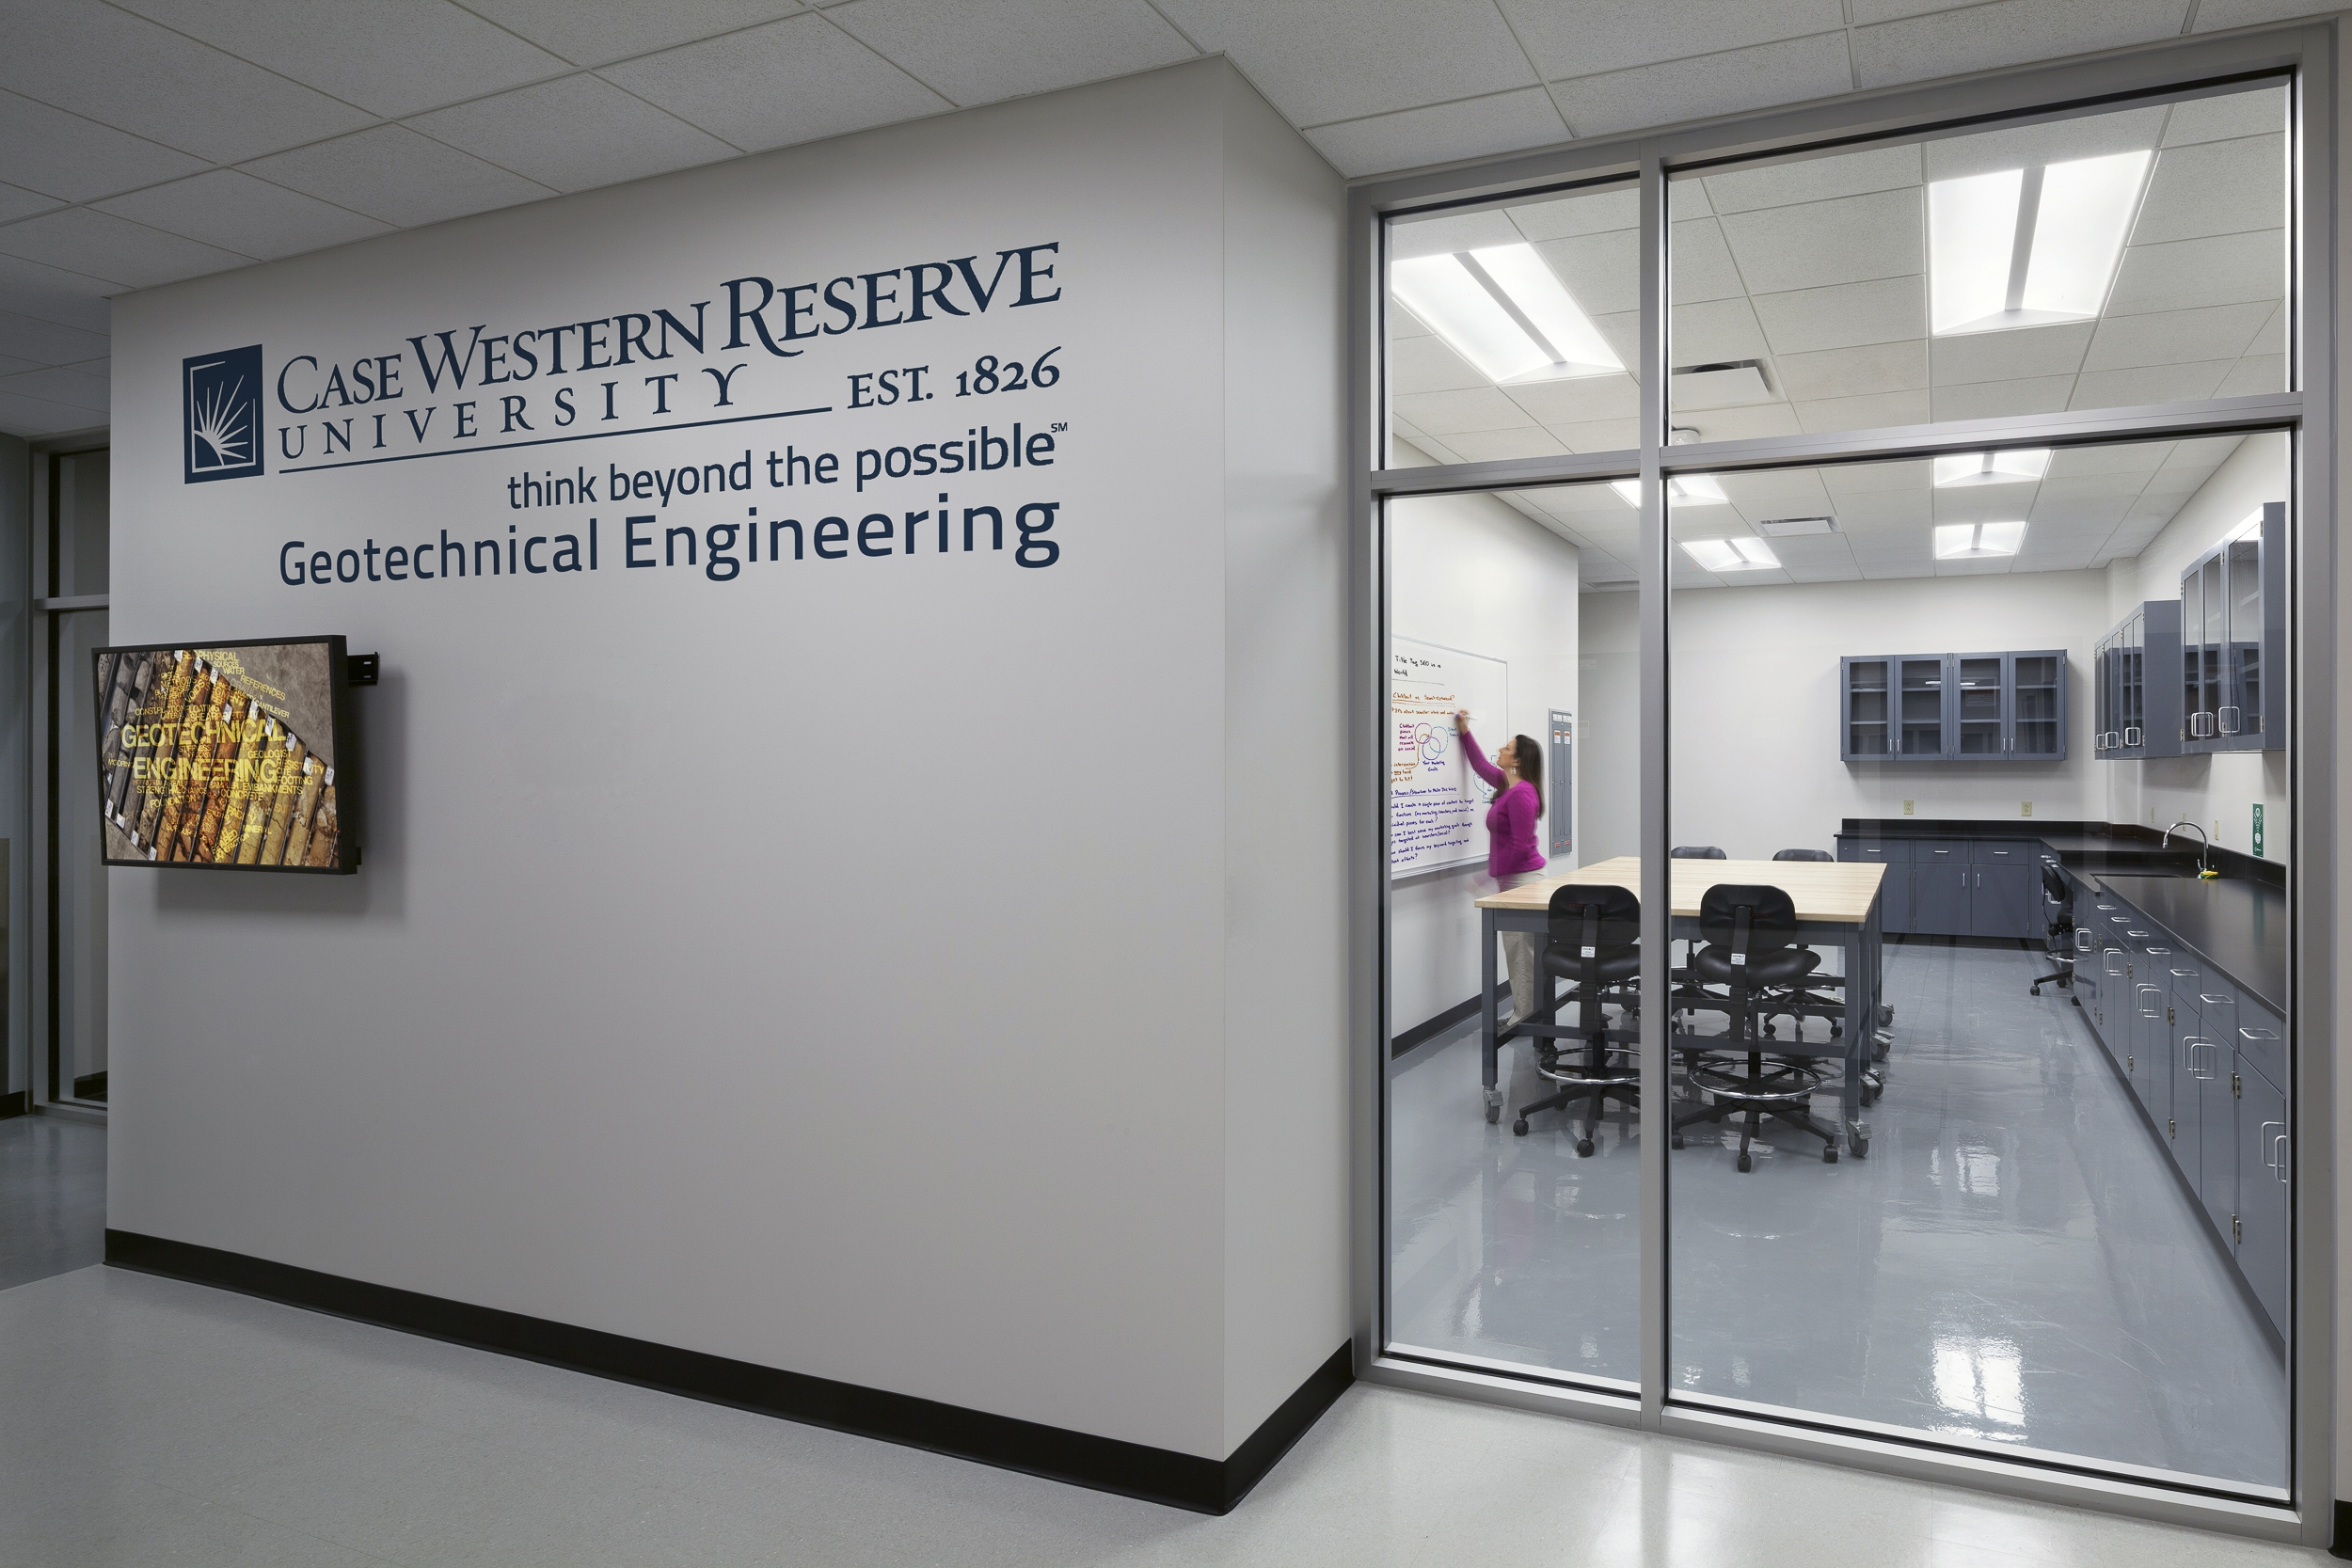 Case Western Reserve University Bingham Building Geotechnical Lab - Cleveland, Ohio